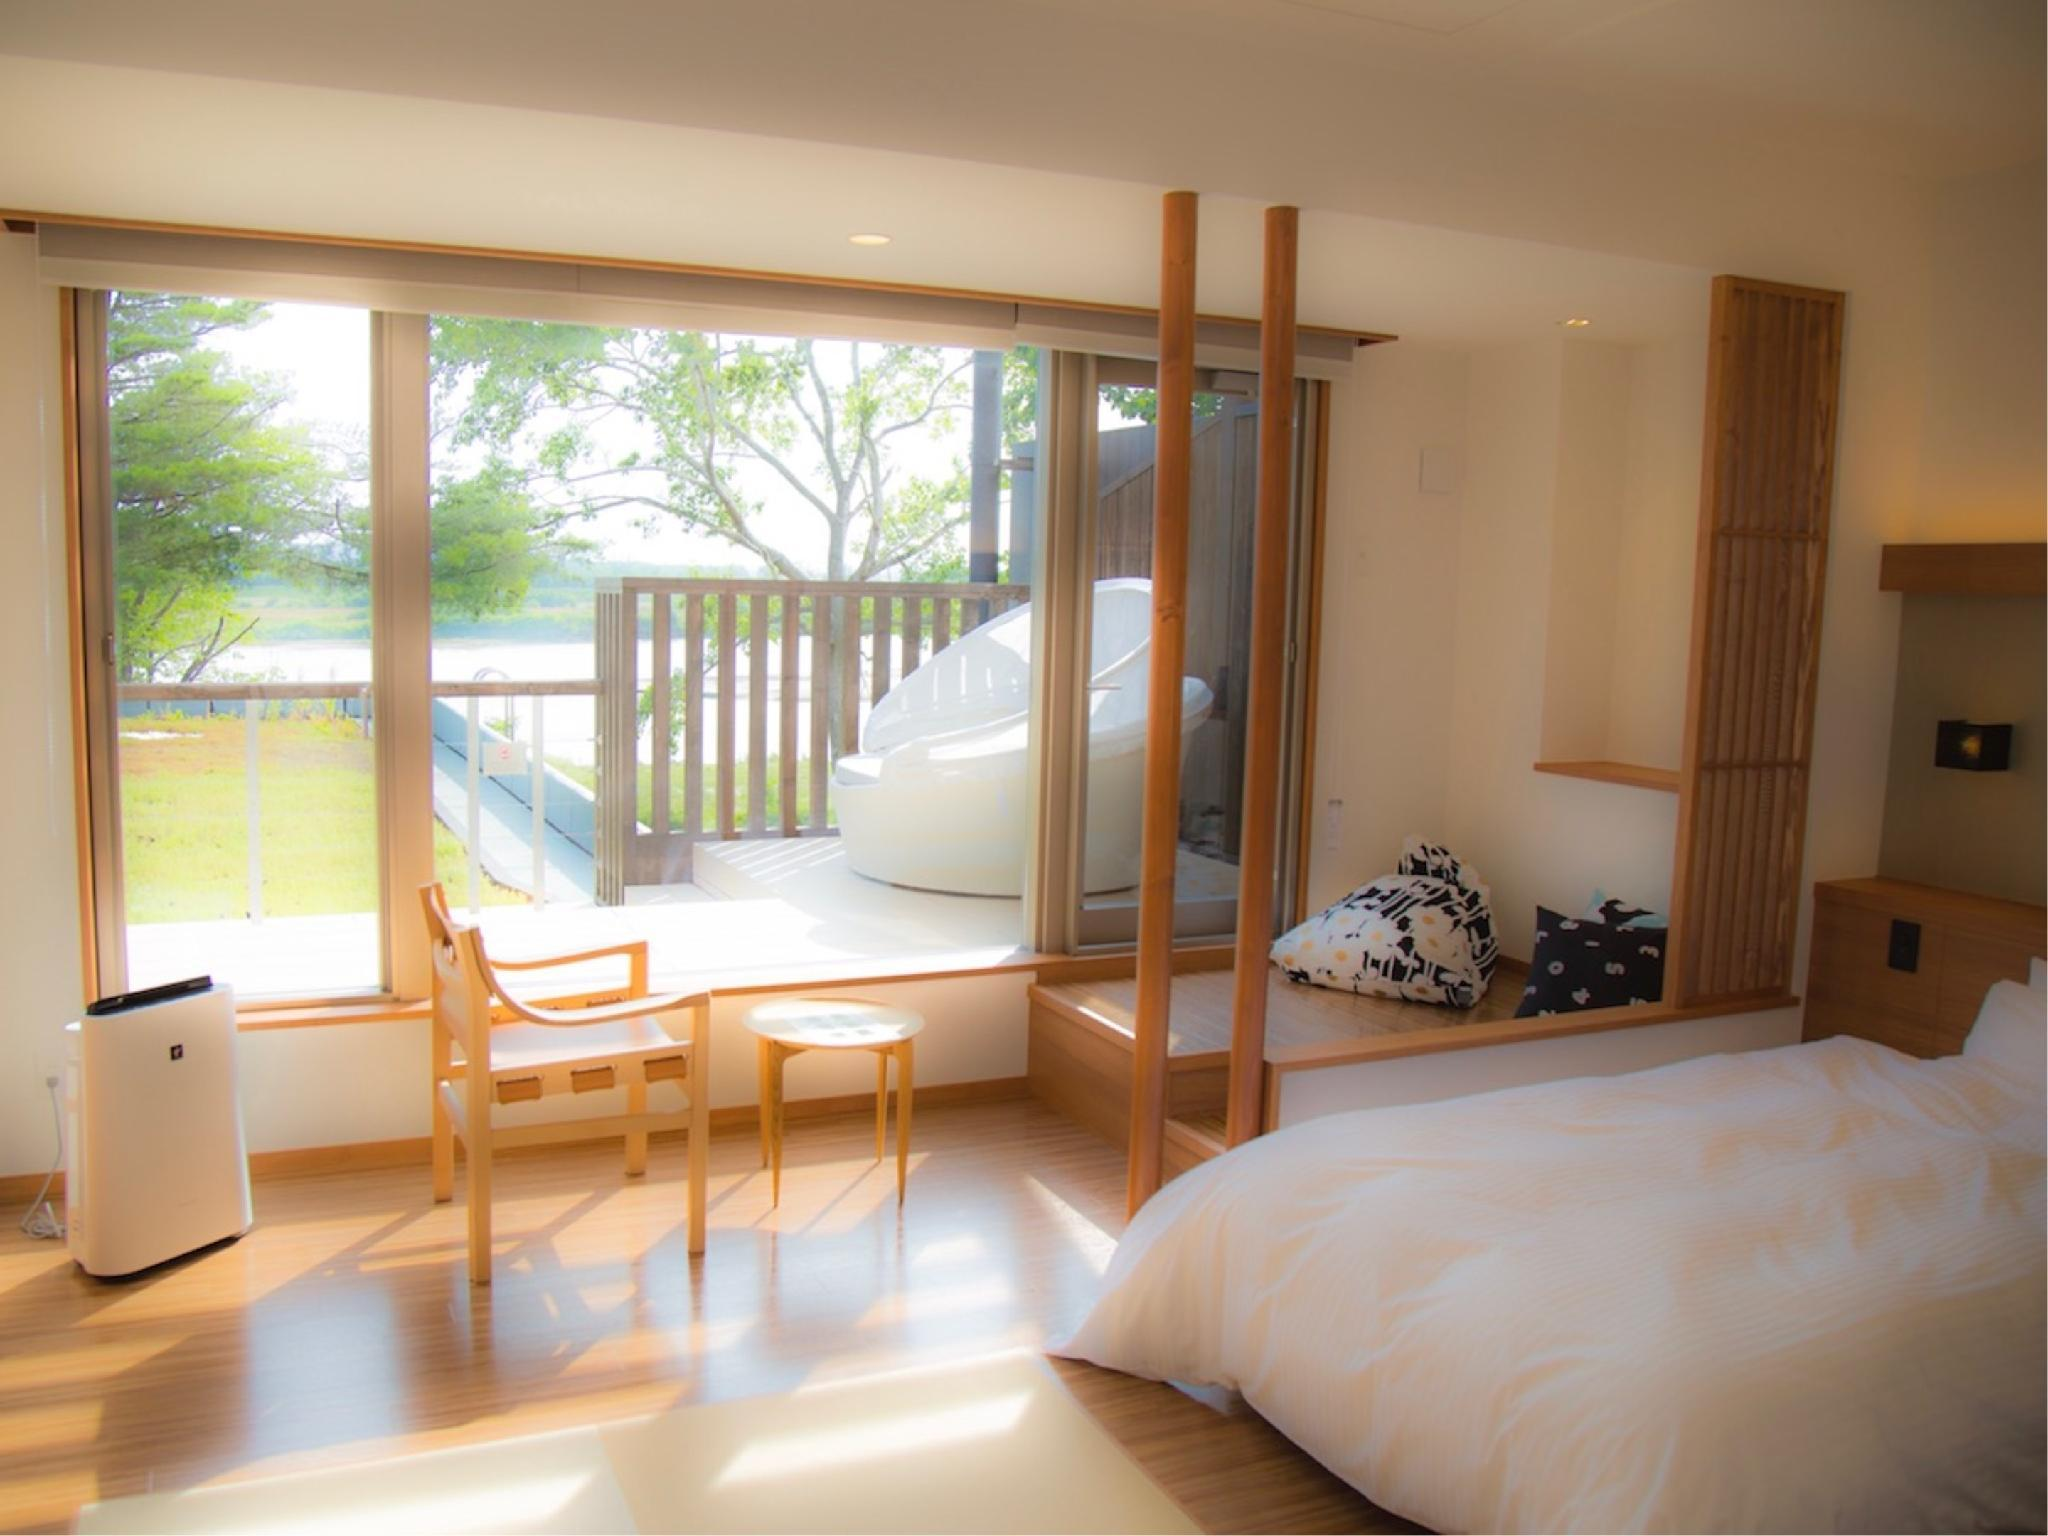 Japanese/Western-style Room with Deck